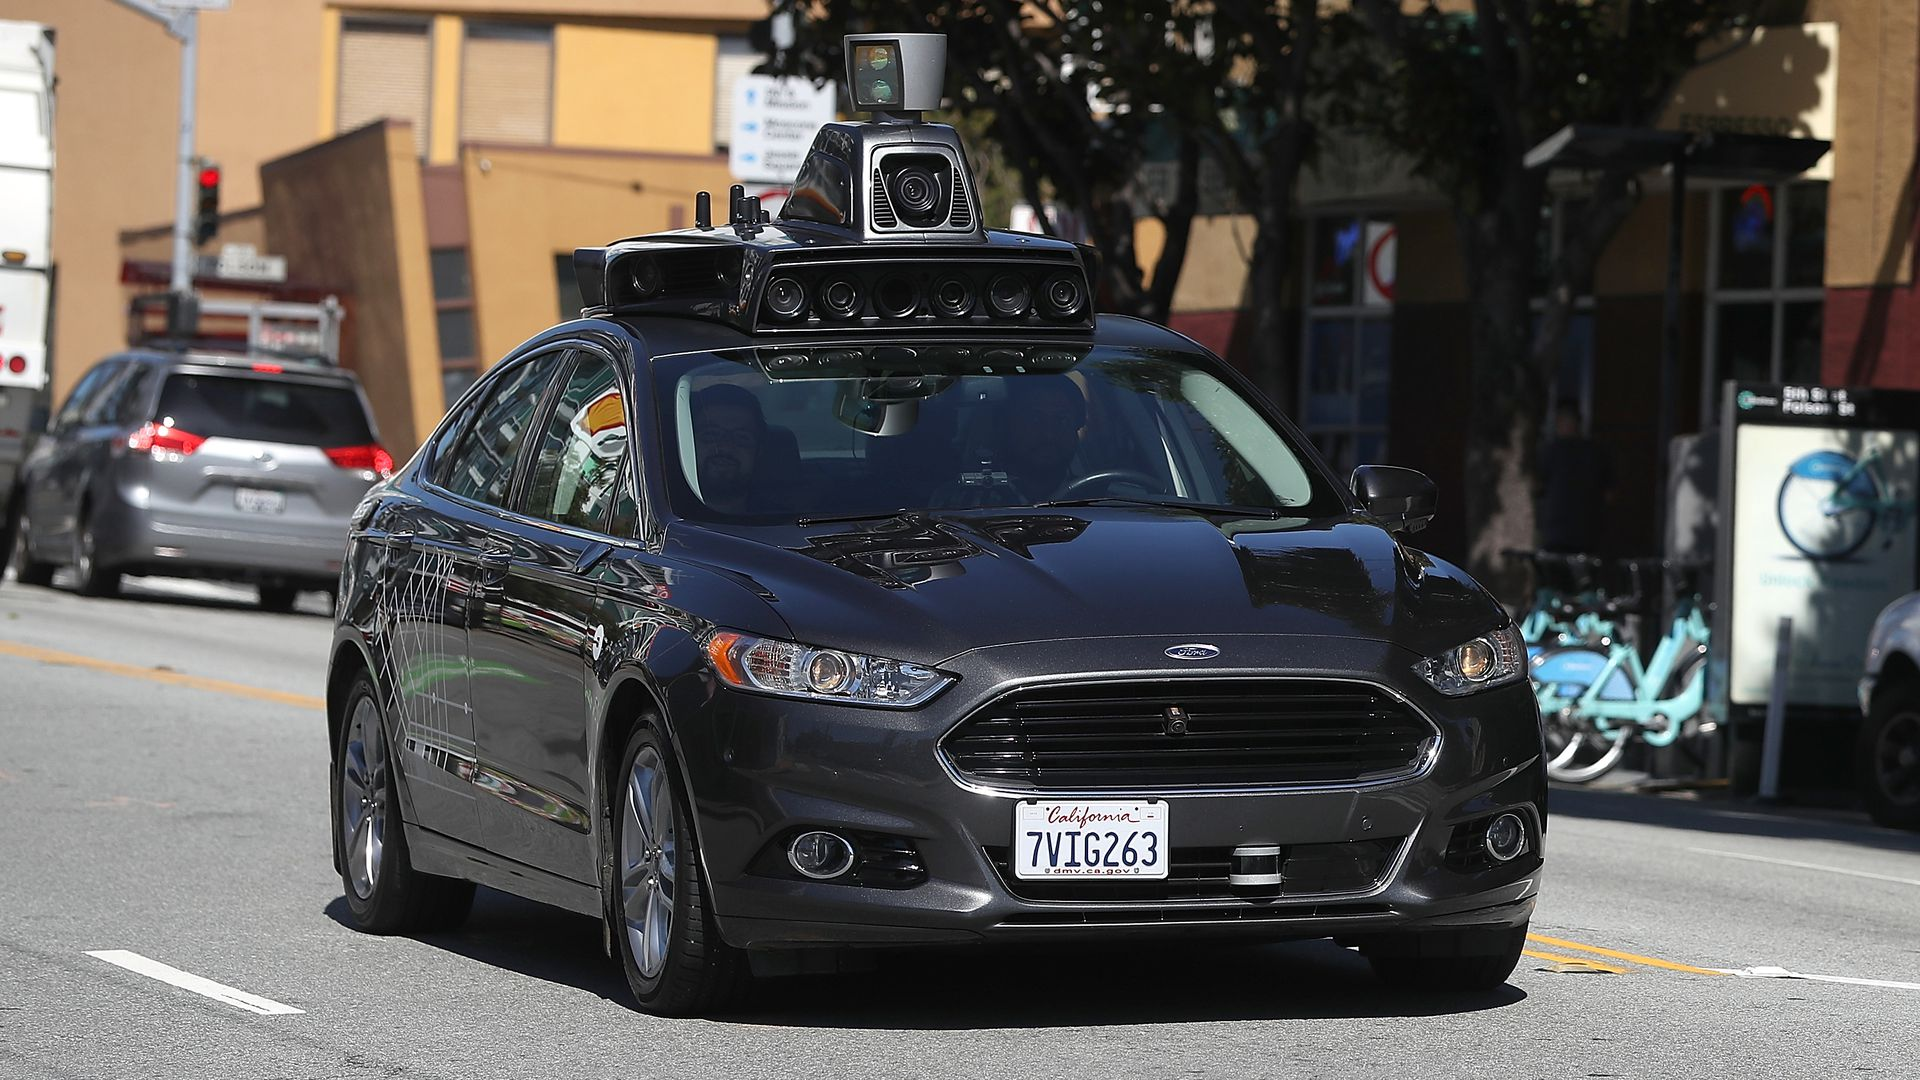 Image of Uber self-driving car